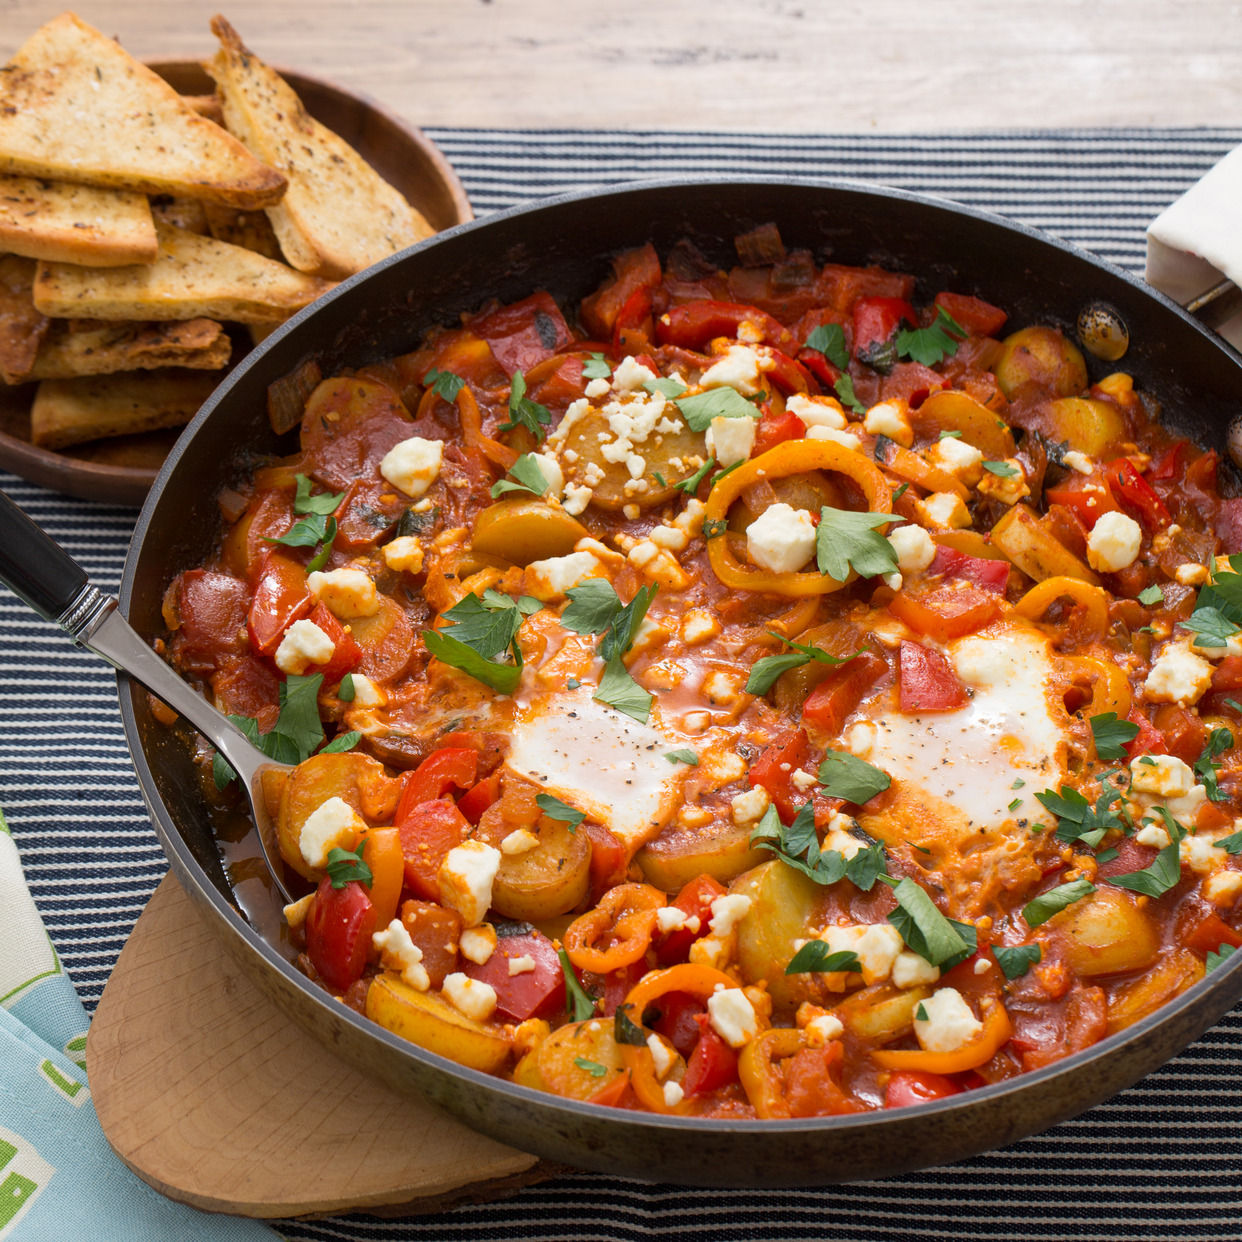 Summer Pepper Shakshuka with Baked Eggs & Za'atar-Spiced Pitas